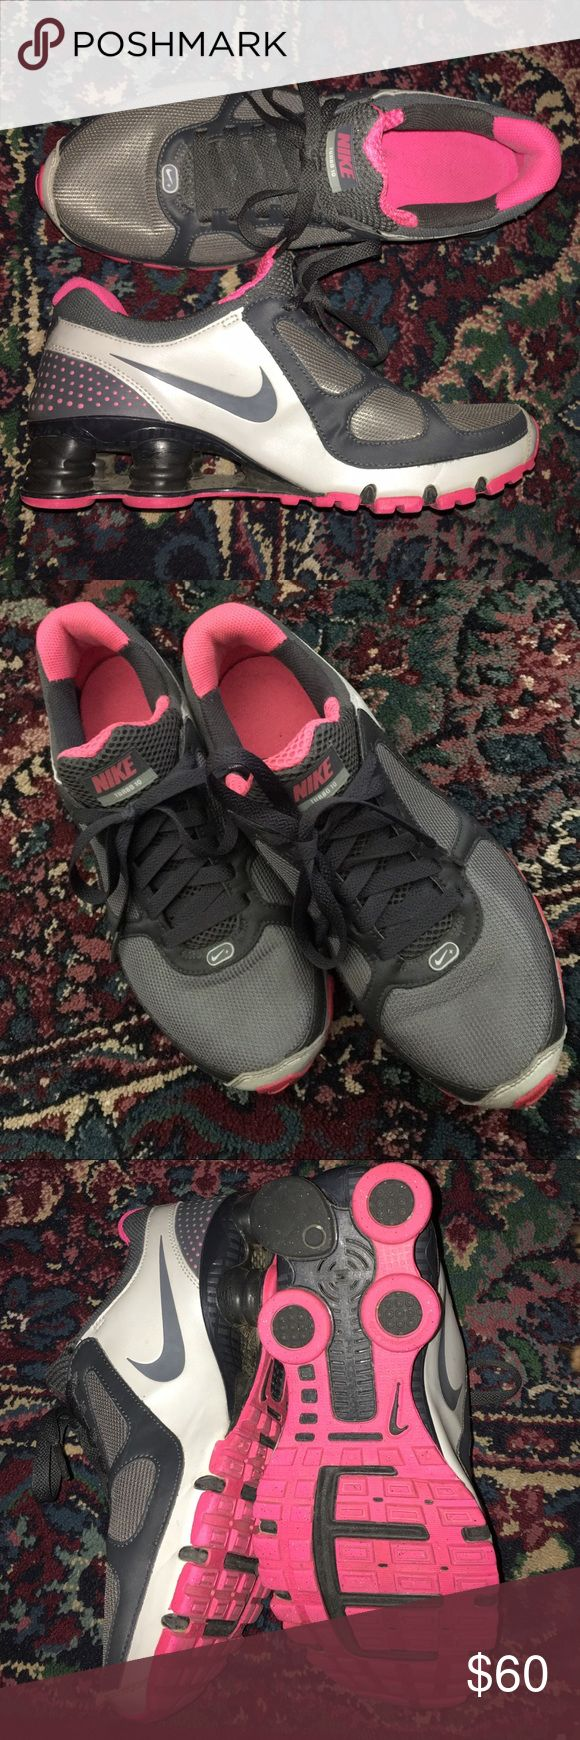 💖NIKE Tennis Shoes💖 💕NIKE SHOCKS Size 71/2💖Love The Color Combination💕 Nike Shoes Athletic Shoes